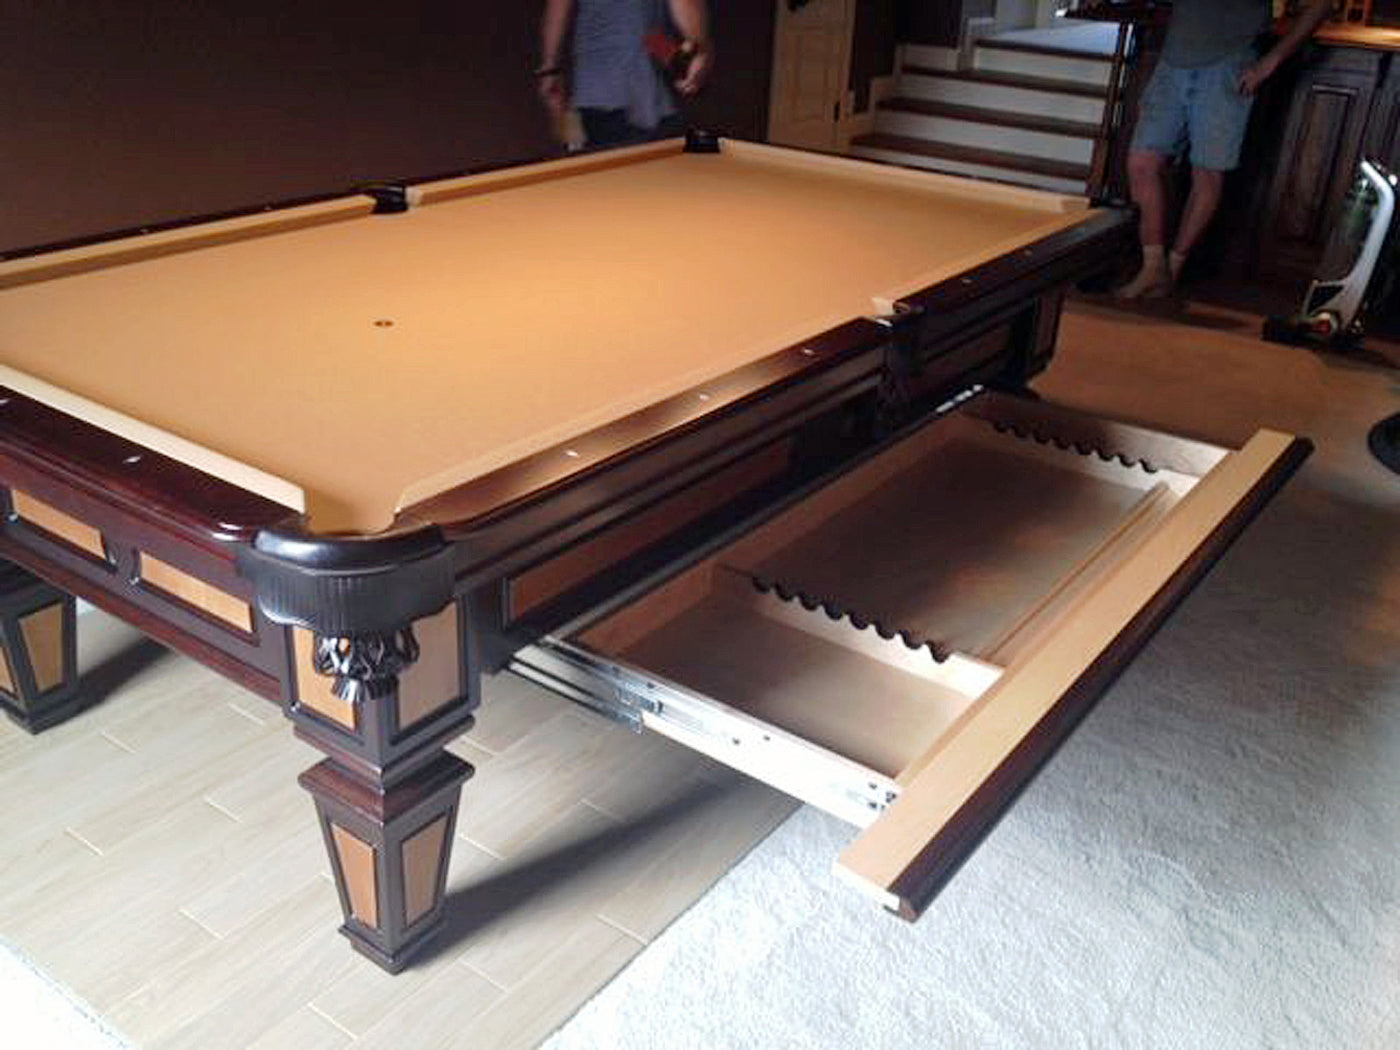 Olhausen Brentwood Pool Table Robbies Billiards - Brunswick brentwood pool table